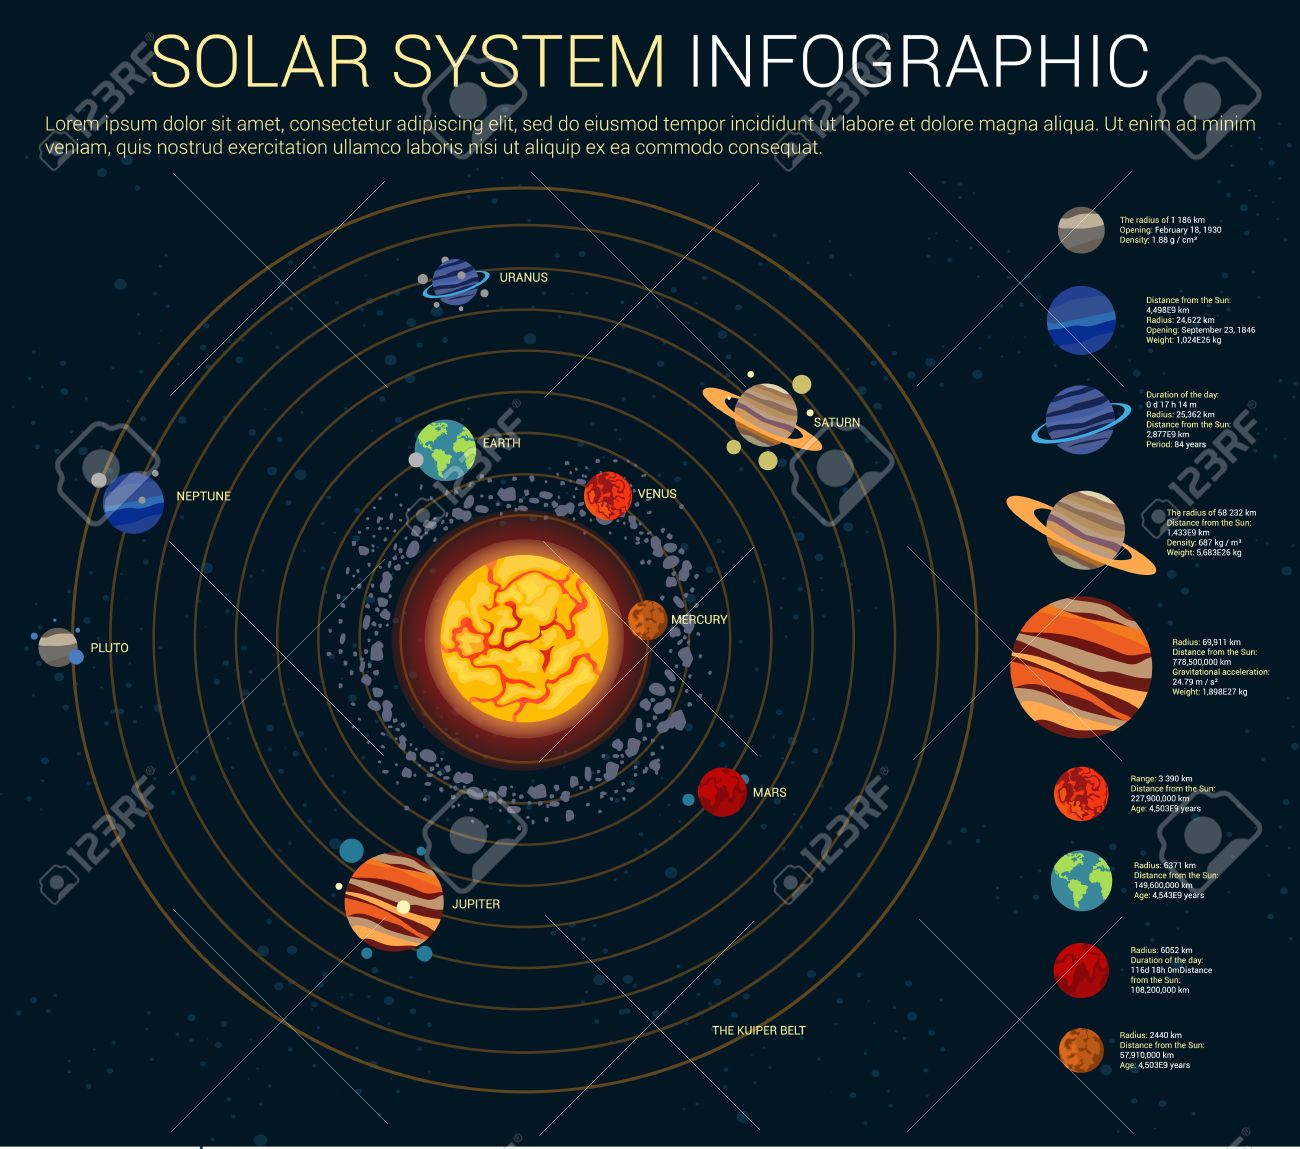 Diagram Of The Sun And The Planets.Inner And Outer Solar System With Sun And Planets On Their Orbits